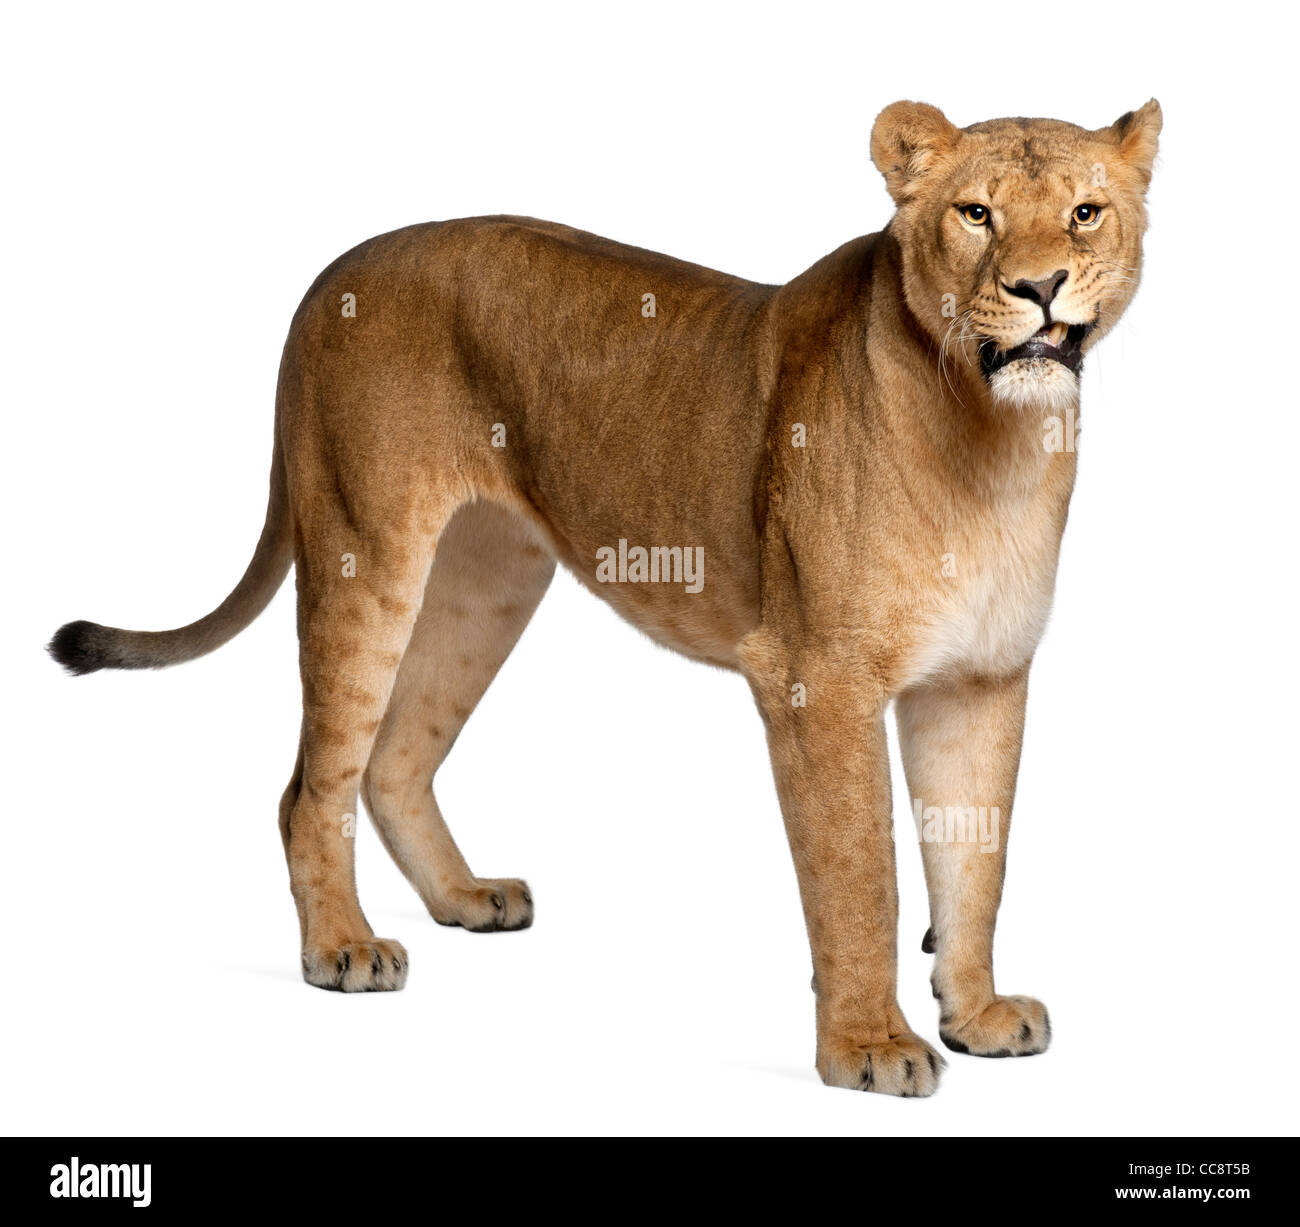 Lioness, Panthera leo, 3 years old, standing against white background Stock Photo